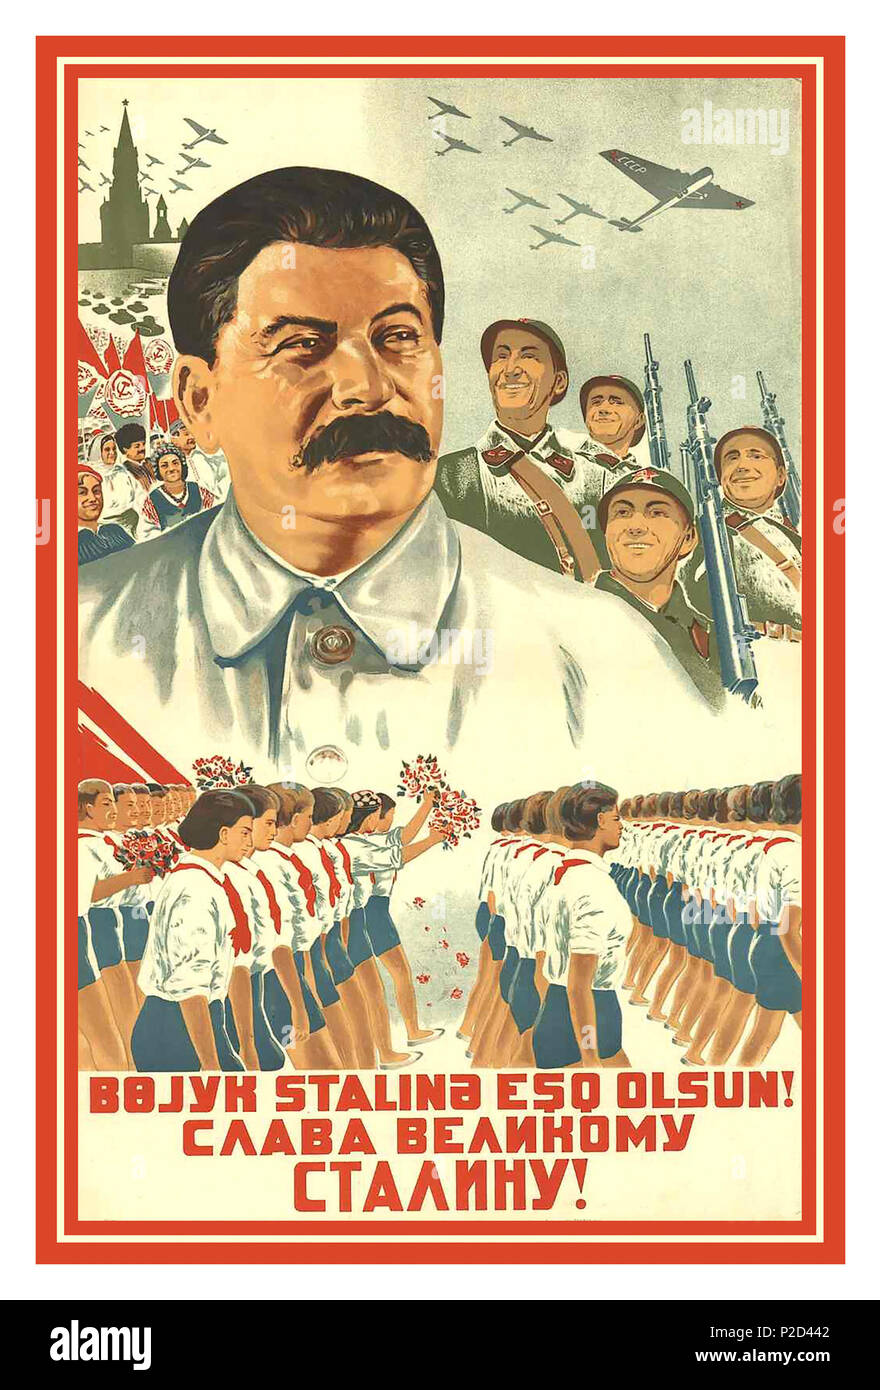 Vintage Soviet Azerbaijan 1938 Propaganda USSR poster. 'Hail the Great Stalin' with Stalin shown as the larger-than-life leader of an enormous, unified empire. The soldiers form in their ranks, waving the Soviet flag. Fighter jets take flight in the background. The regime is all-powerful, Stalin is the architect. USSR 1930's - Stock Image